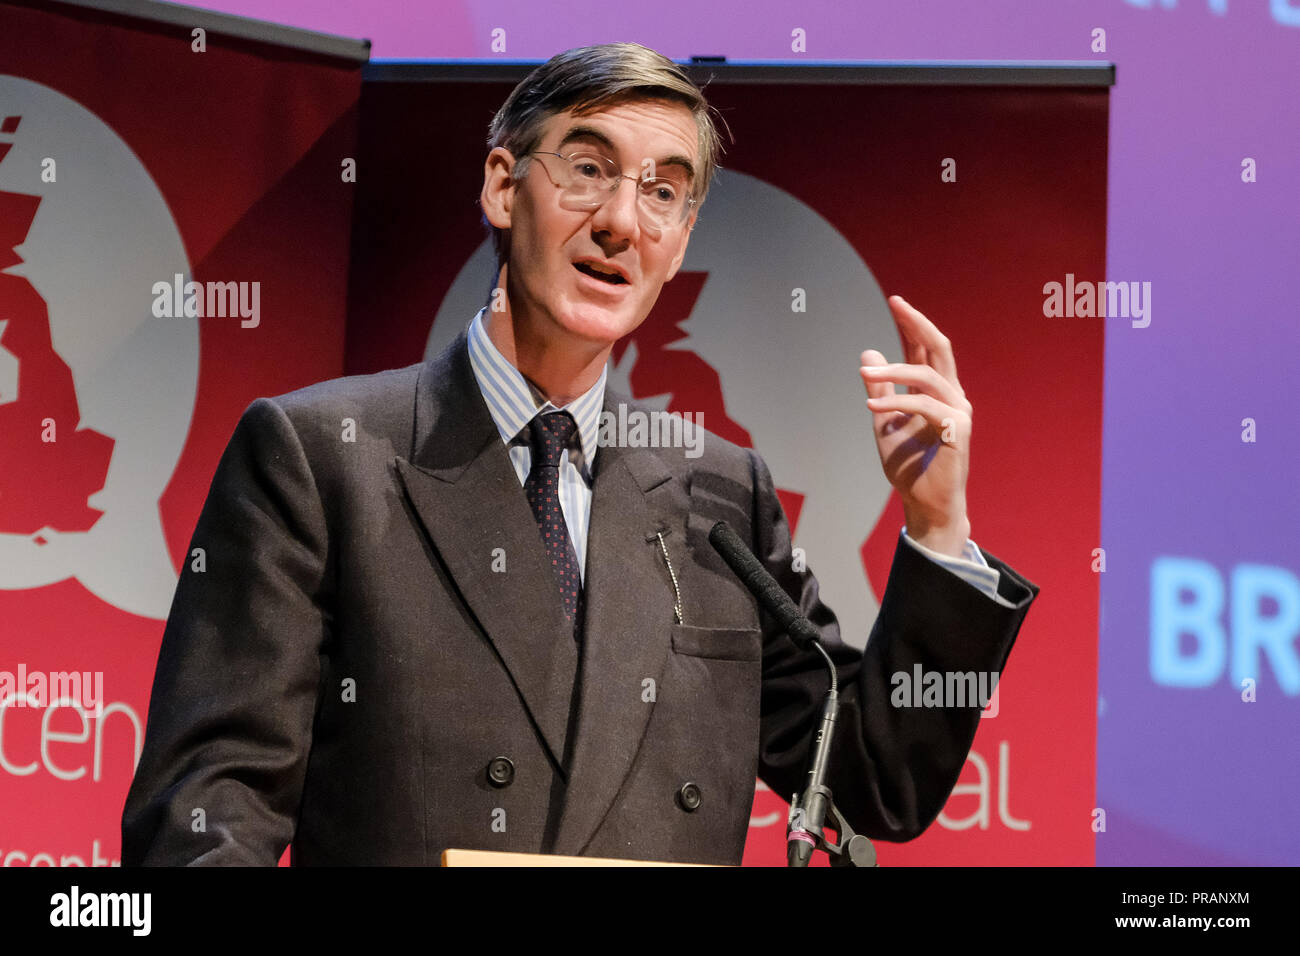 Birmingham, UK. 30 Sept, 2018. Jacob Rees-Mogg at Conservative Party Conference on Sunday 30 September 2018 held at ICC Birmgingham, Birmingham. Pictured: Jacob Rees-Mogg appears at a Fringe Event hosted by BREXIT Central . Picture by Julie Edwards. Credit: Julie Edwards/Alamy Live News - Stock Image